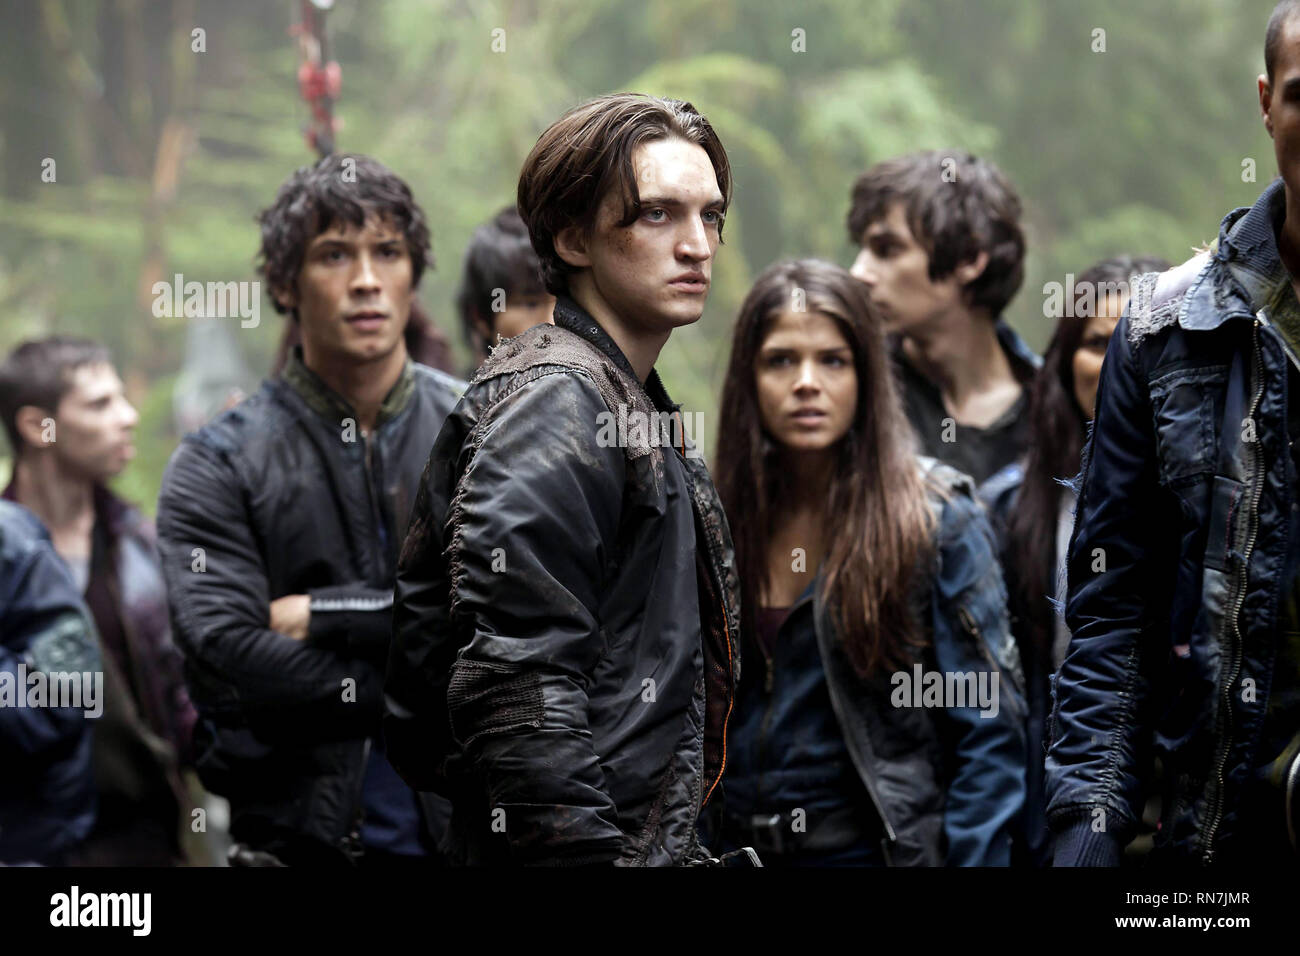 MORLEY,HARMON,AVGEROPOULOS, THE HUNDRED, 2014 - Stock Image